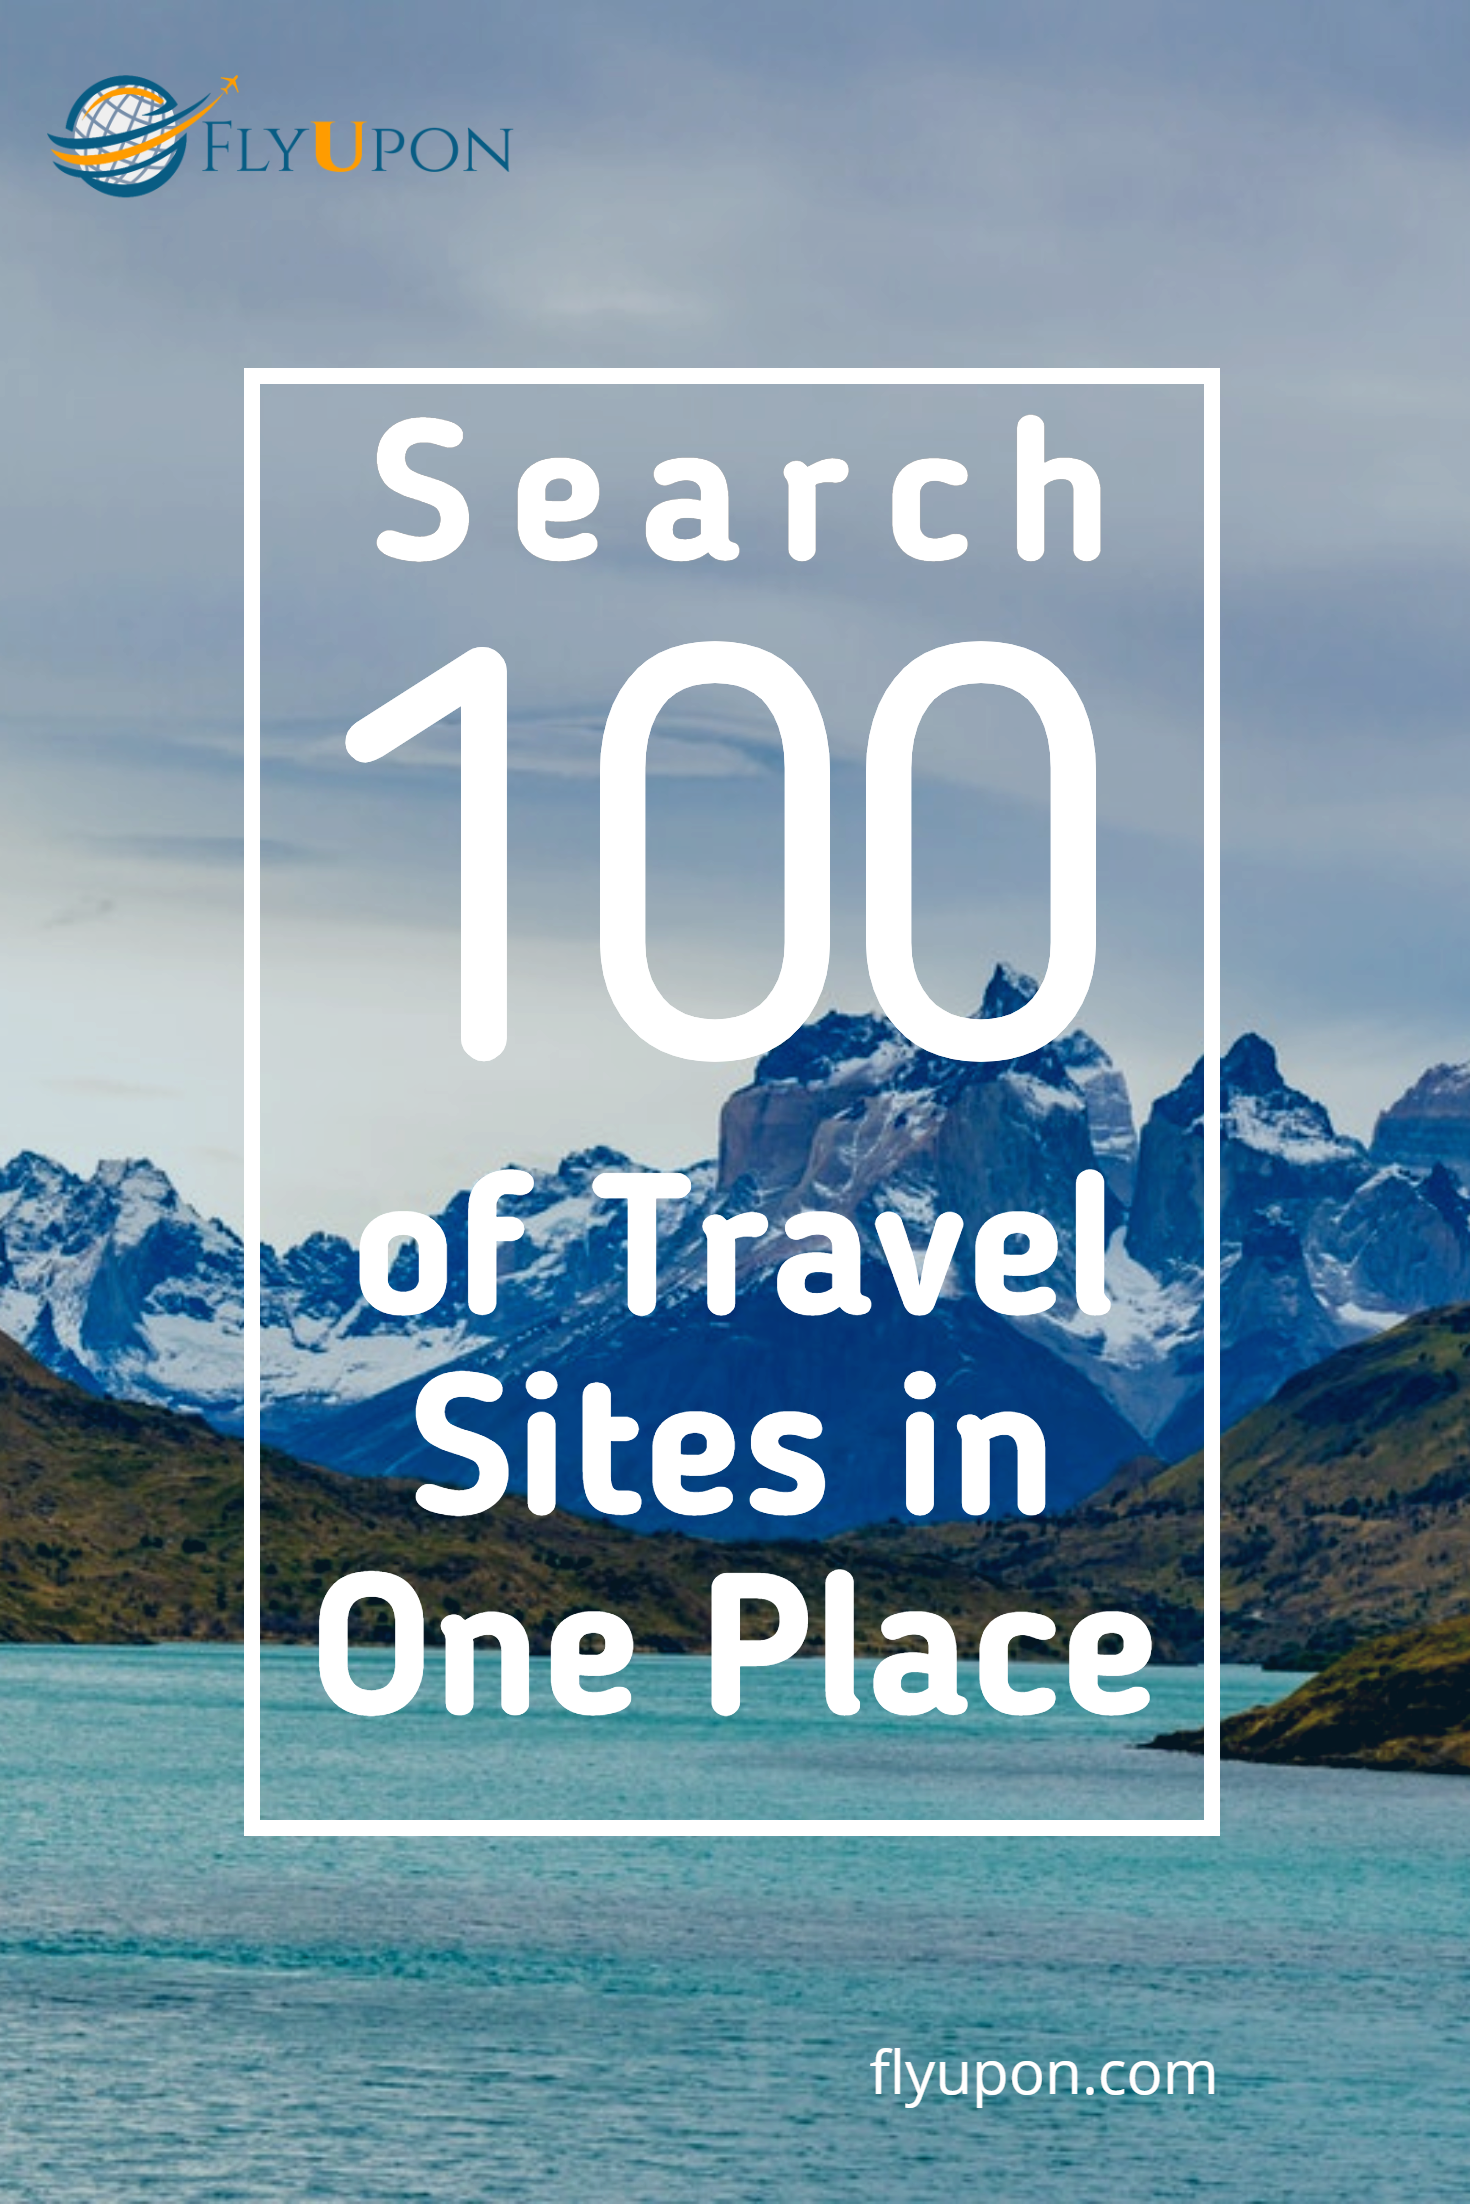 Search Hundreds of Travel Sites in One Place Travel